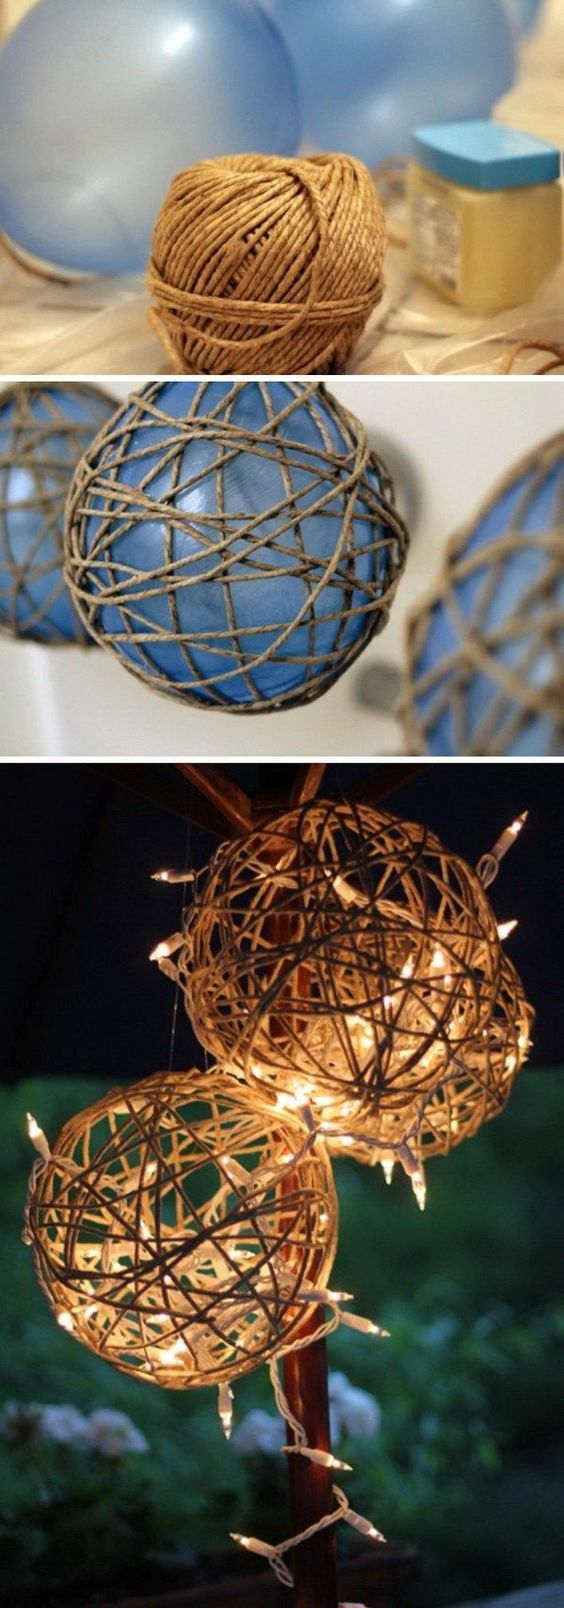 DIY Twine Garden Lanterns: Twine is the perfect material to add the rustic warm and charm to your decor. This twine garden lantern is super easy and quick to make.: